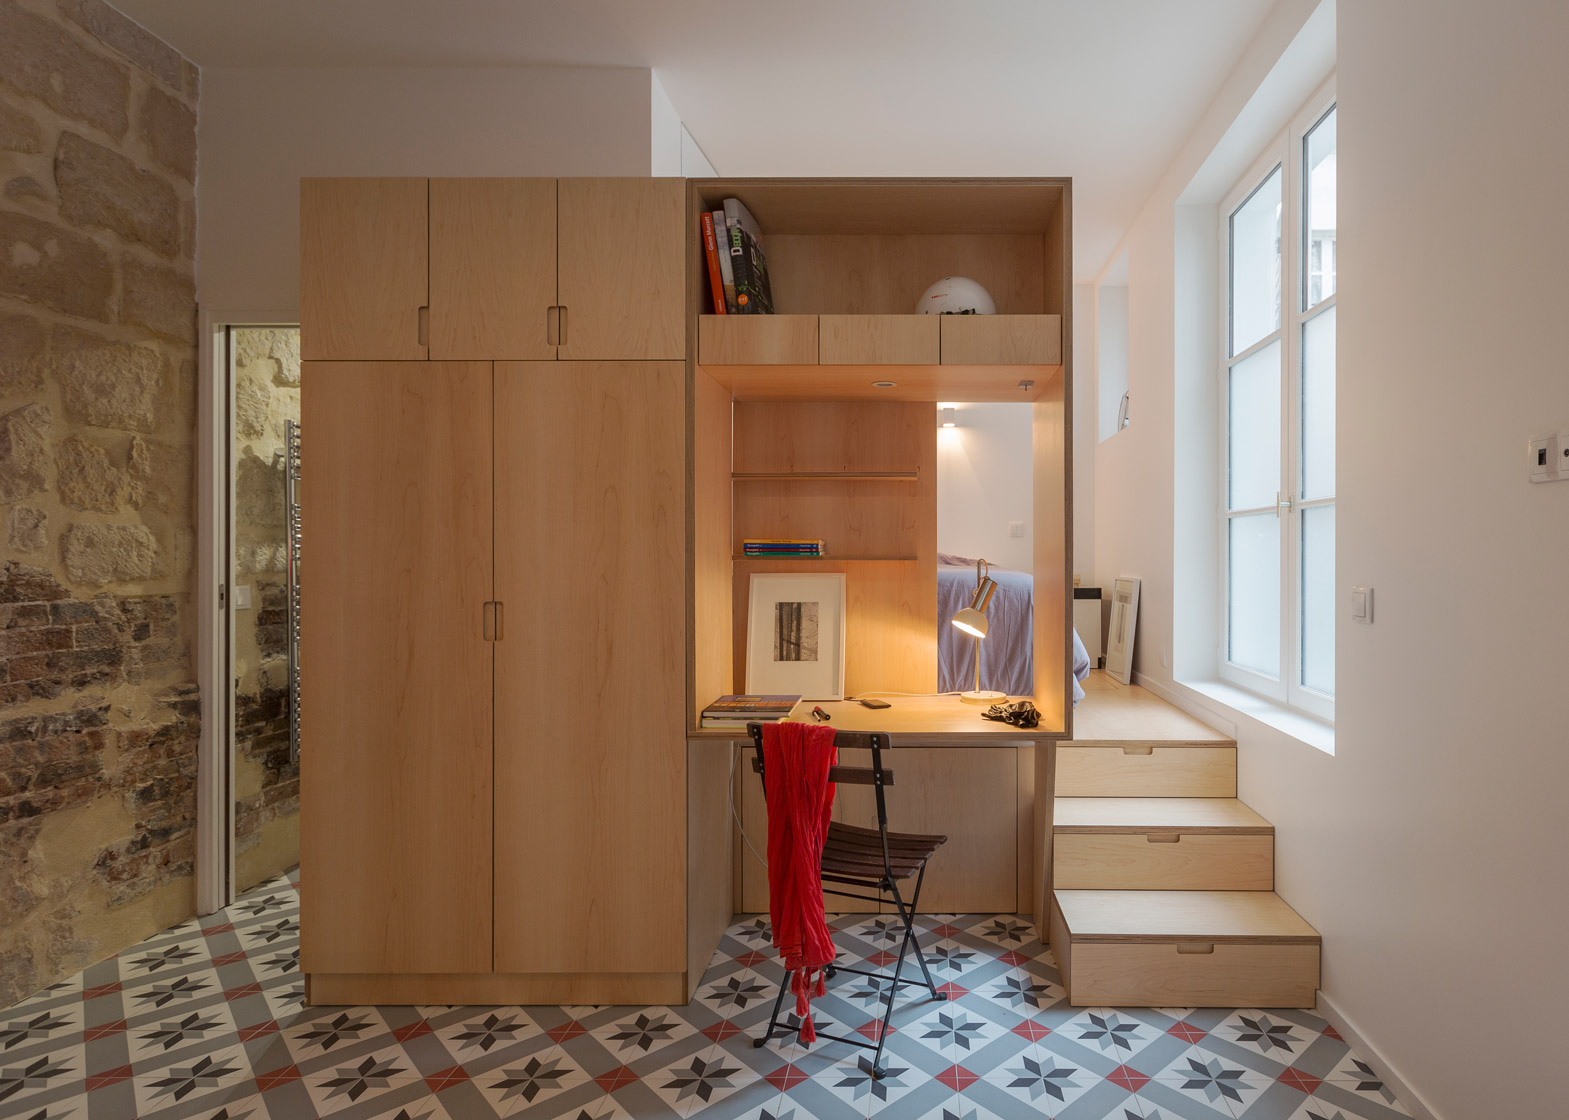 Fullsize Of One Room Studio Apartment